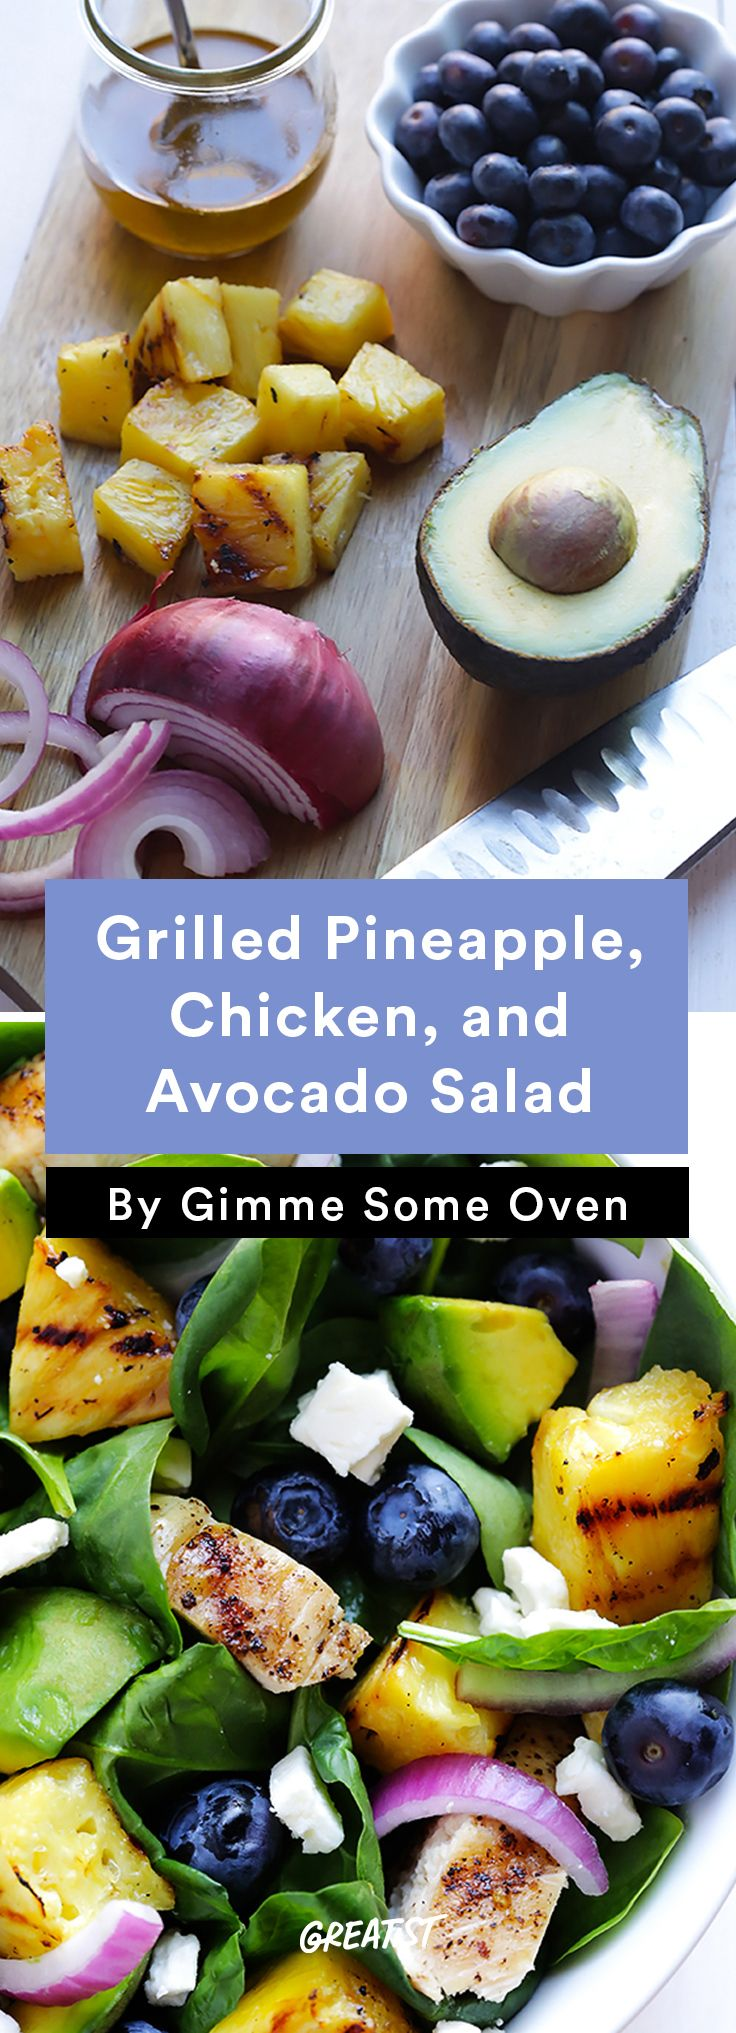 5. Grilled Pineapple, Chicken, and Avocado Salad #healthy #salads http://greatist.com/eat/summer-salad-recipes-youll-actually-want-to-eat